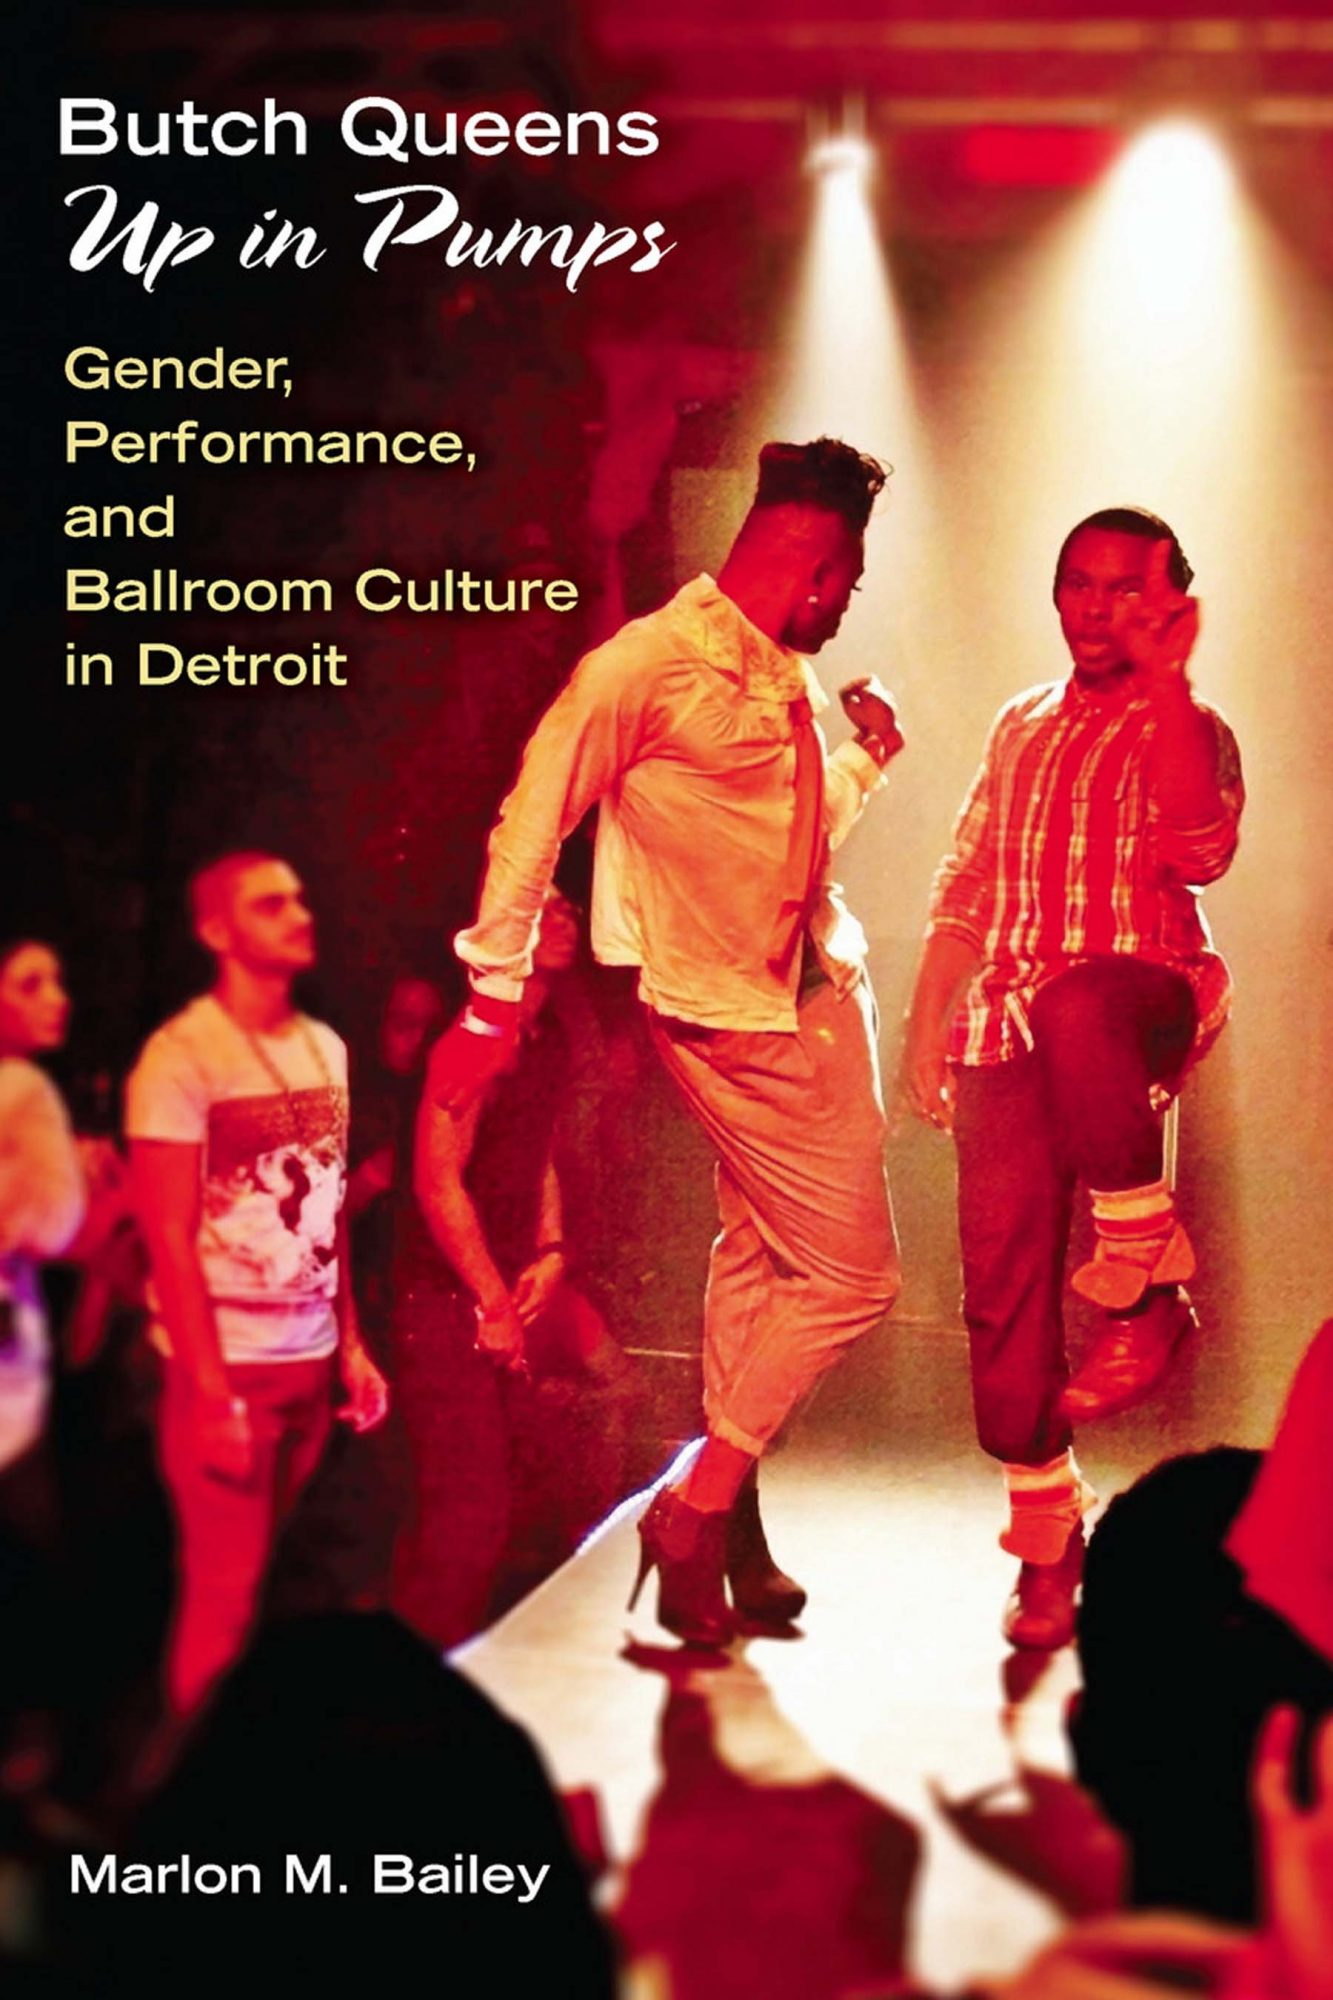 Butch Queens Up in Pumps: Gender, Performance, and Ballroom Culture in Detroit by Marlon M. Bailey